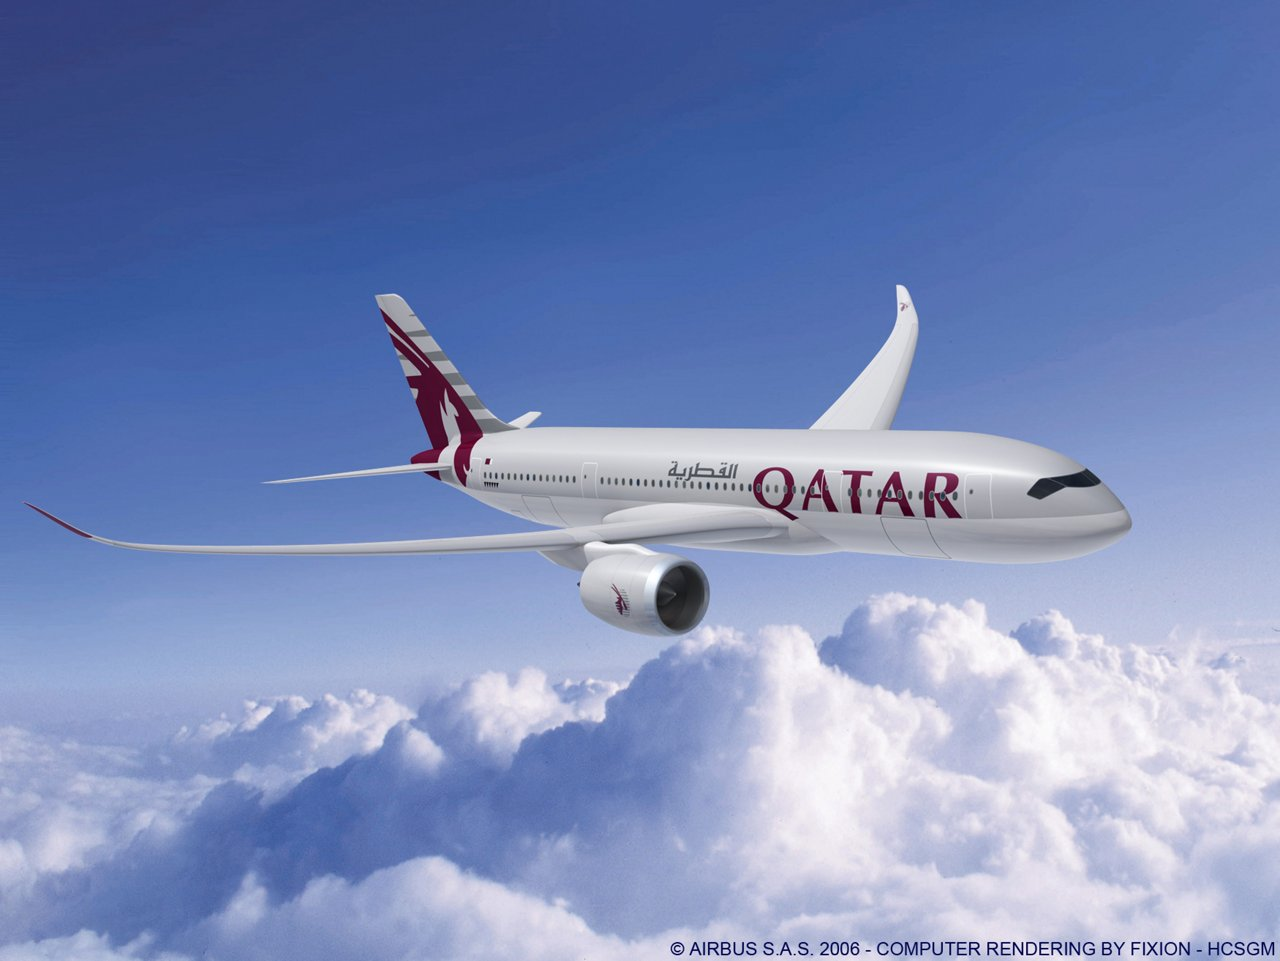 Qatar Airways is to operate both the A350-800 (depicted) and A350-900 versions of the A350 XWB